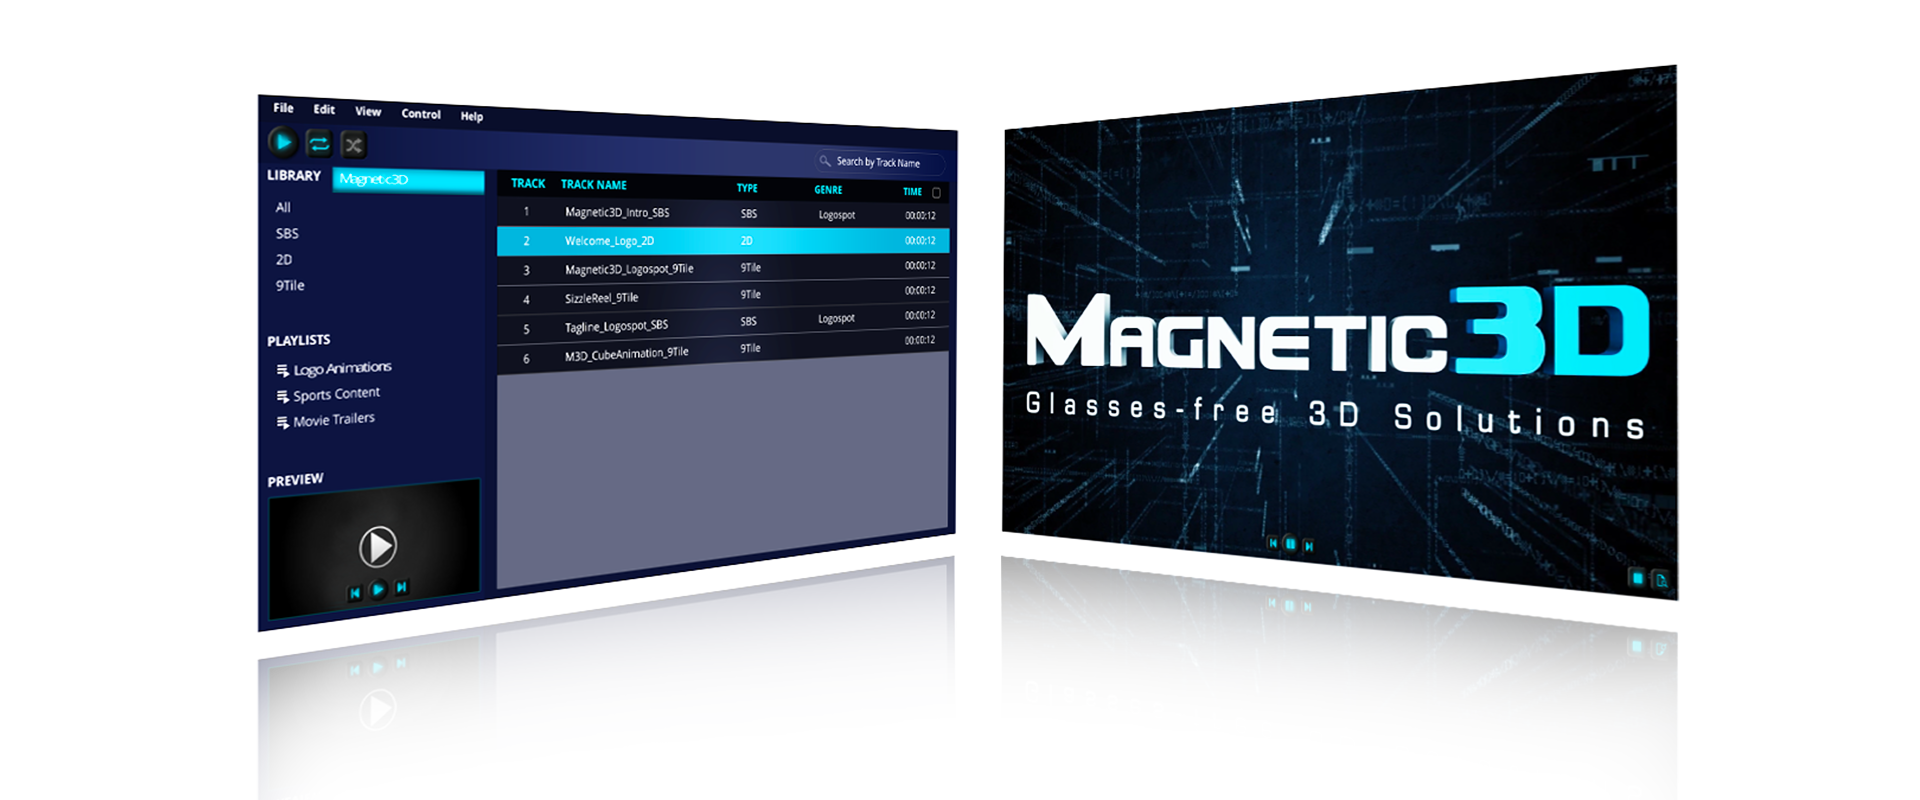 https://www.magnetic3d.com/wp-content/uploads/2018/10/Products_Apps_Banner.png